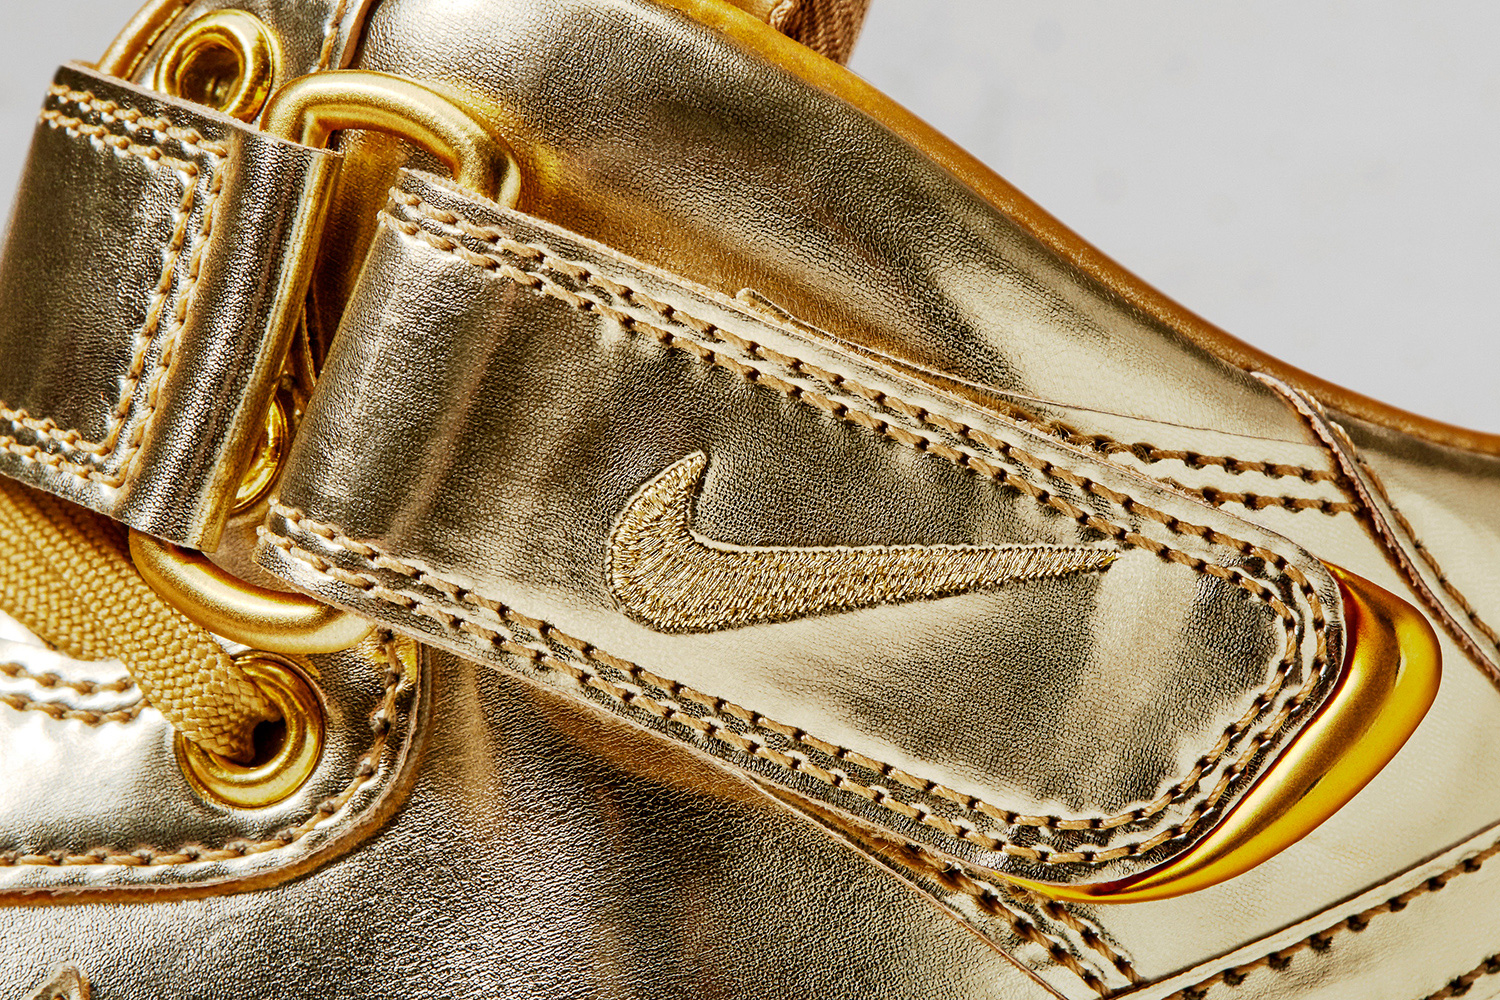 Nike unlimited glory - TRENDS periodical